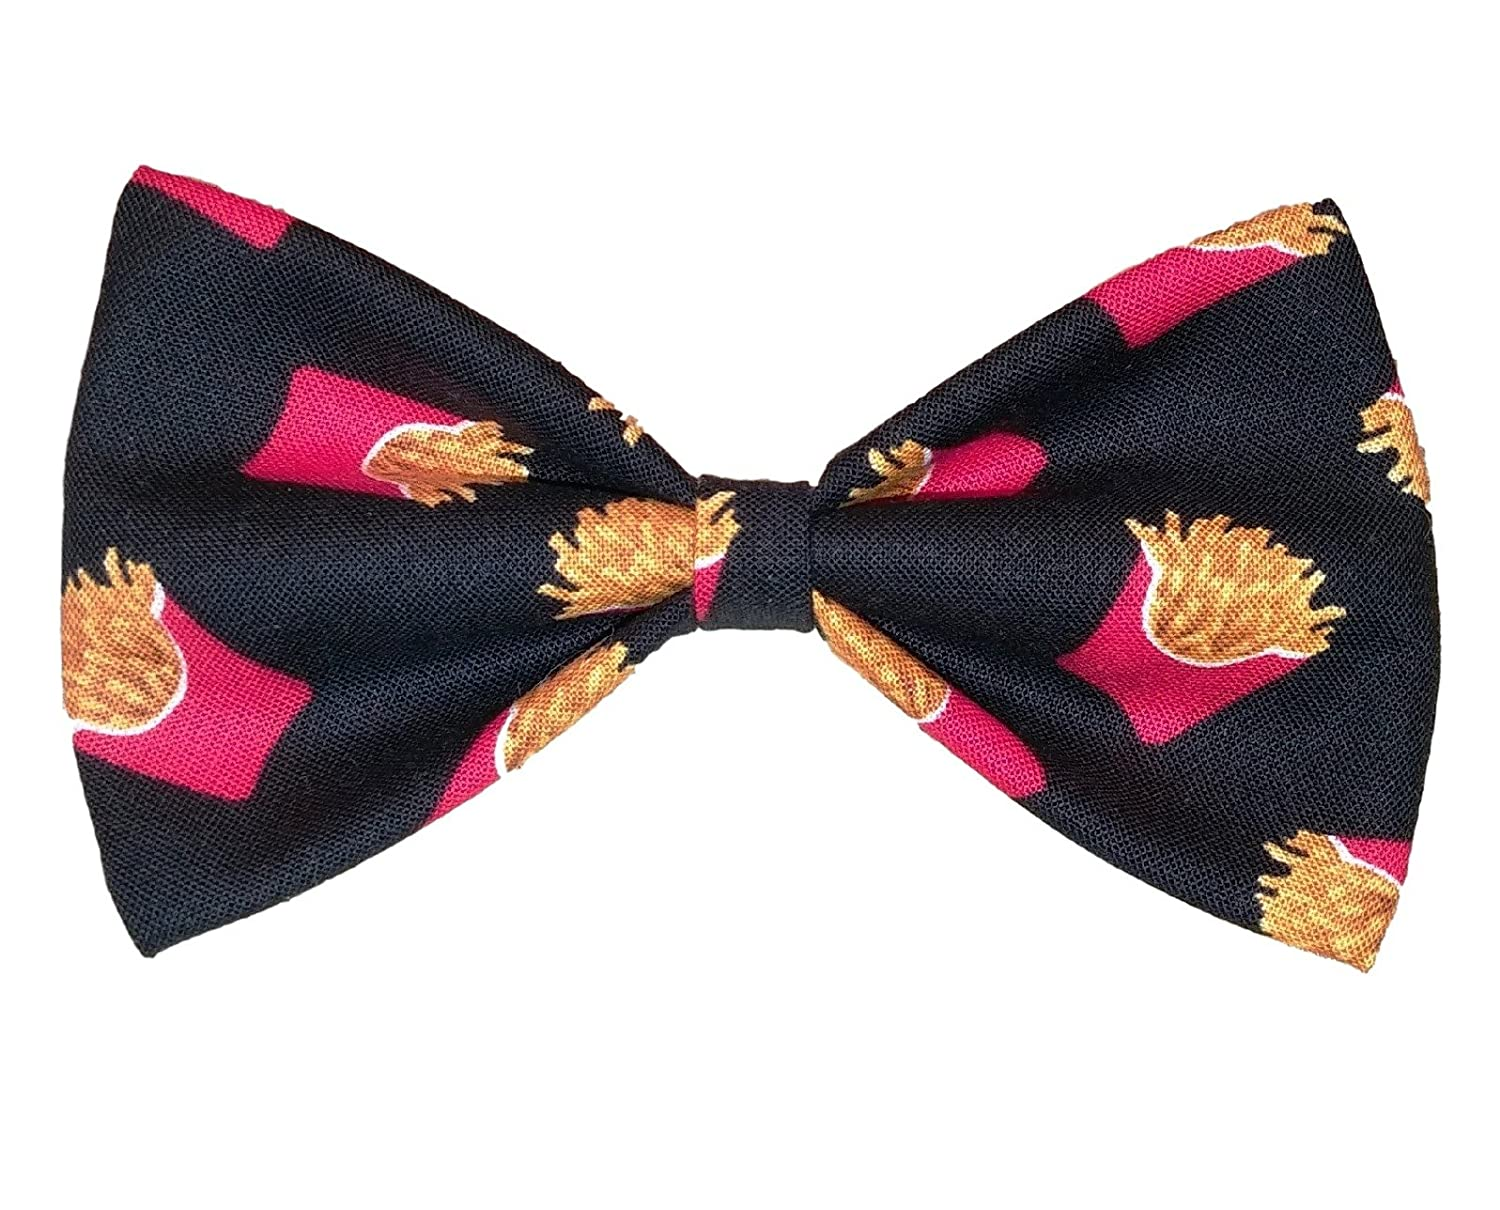 French Fries Bow Tie - Clip on Bowtie